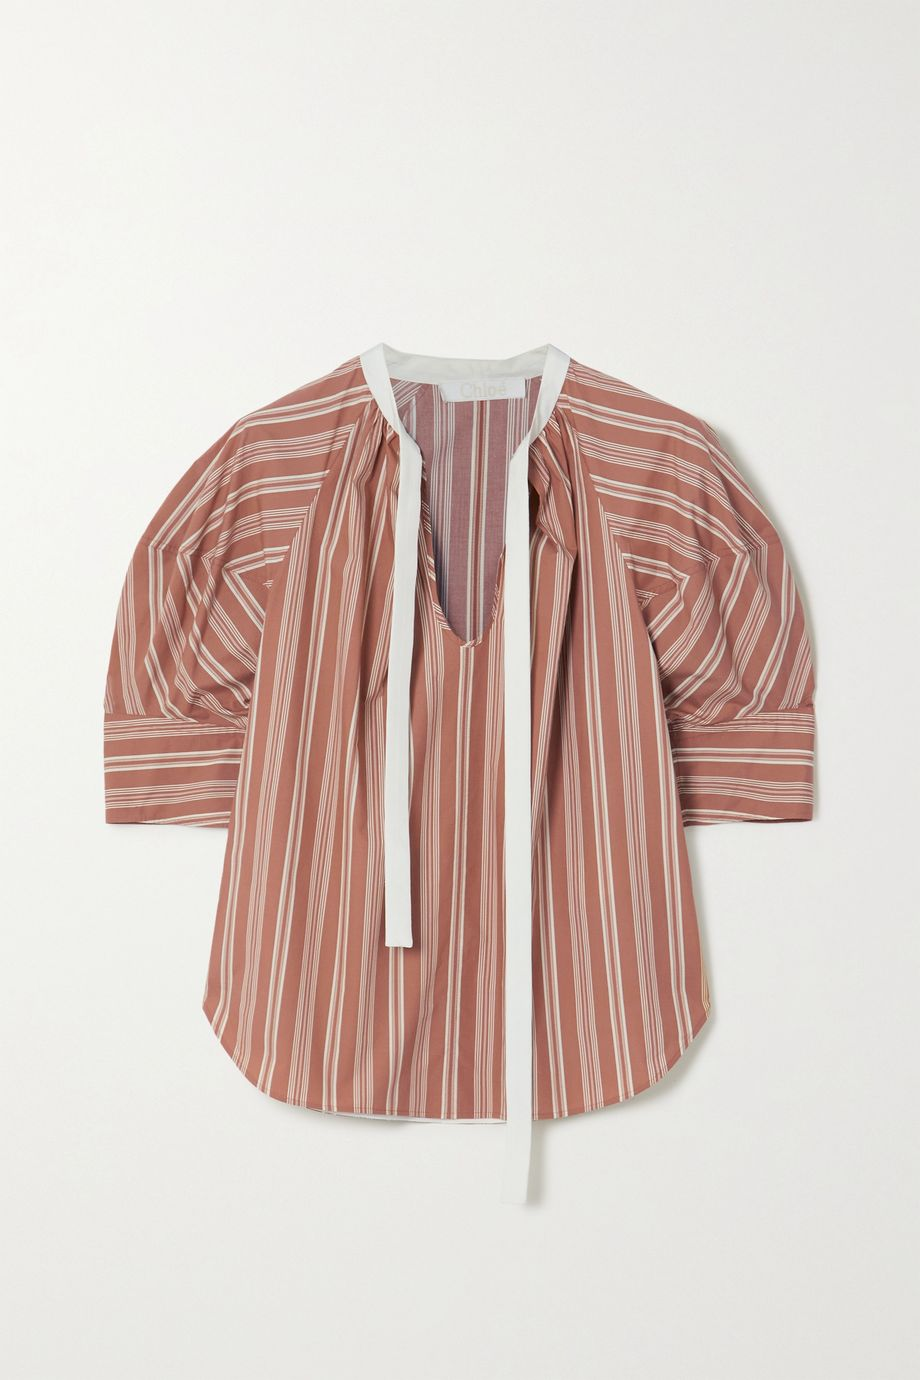 Chloé Striped silk blouse